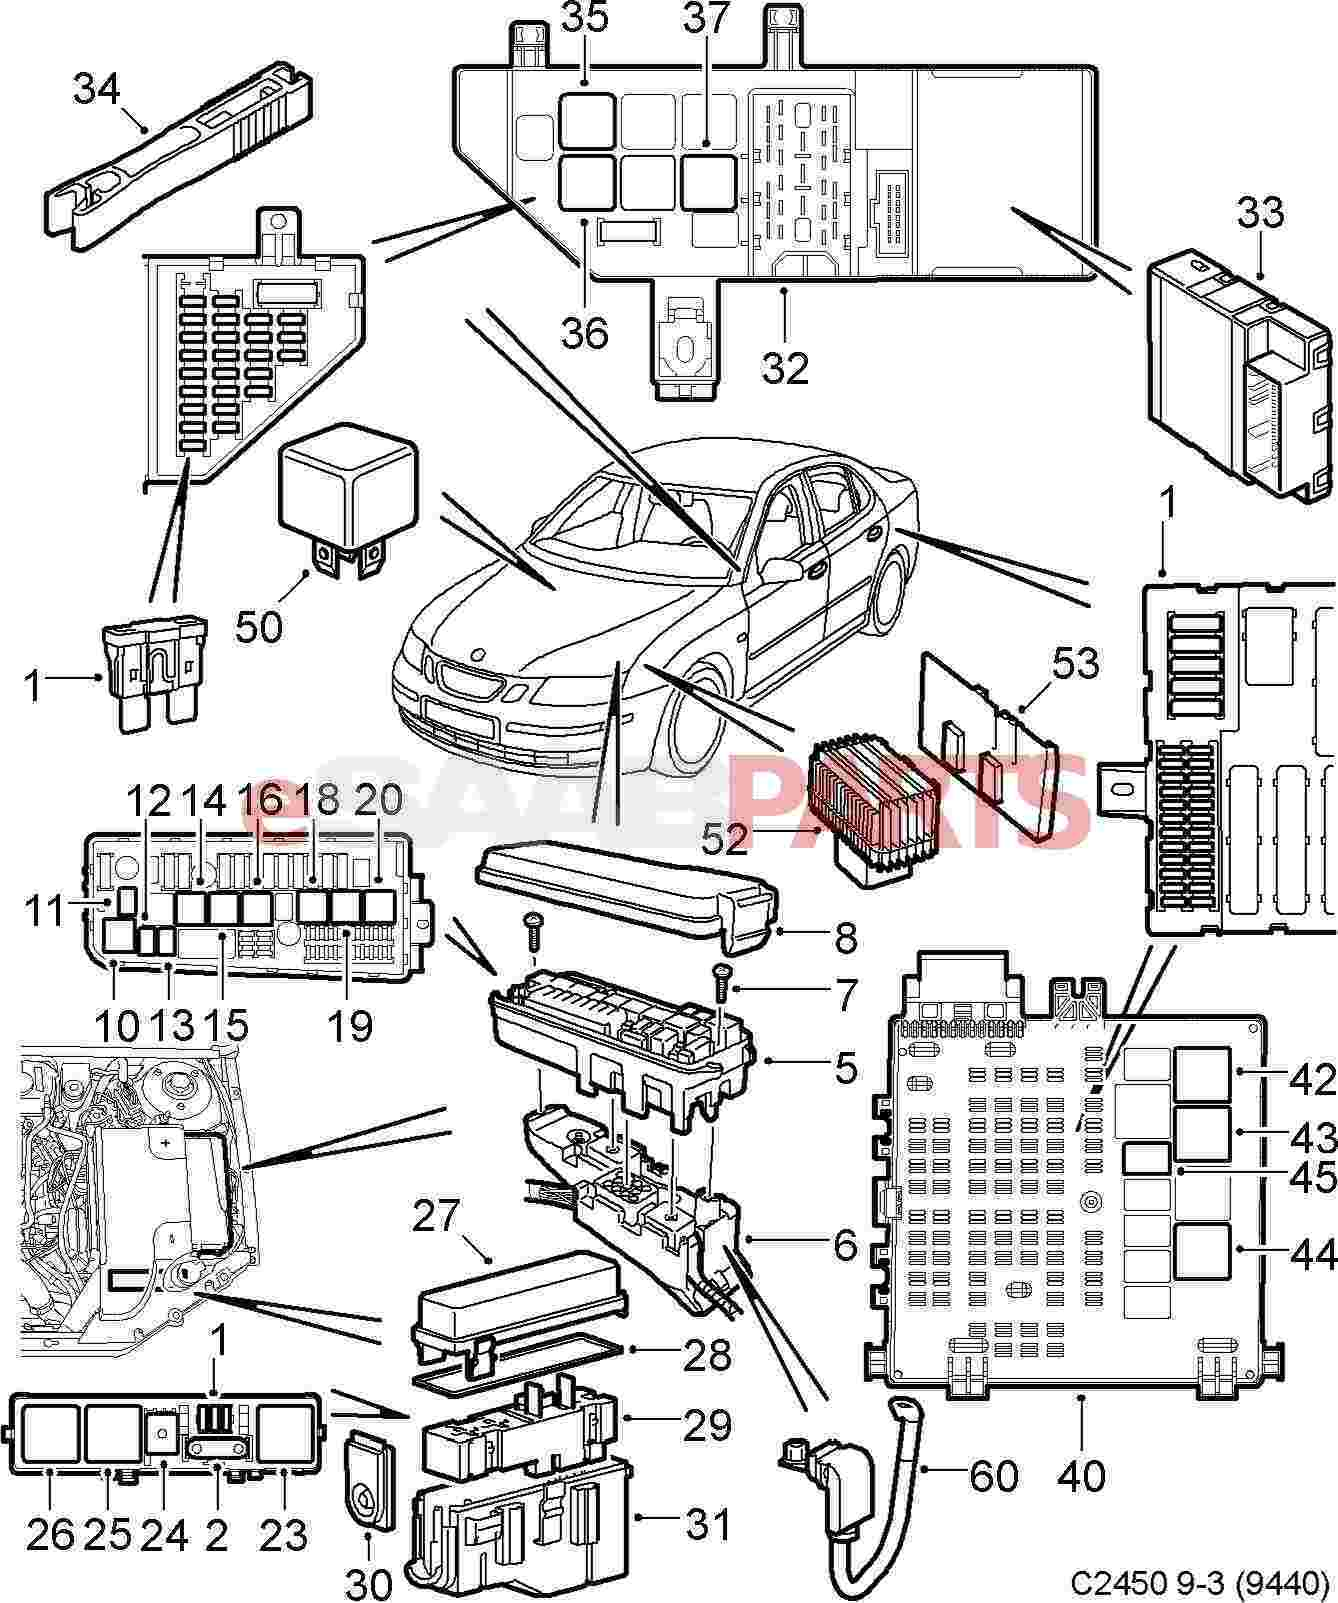 hight resolution of 2004 saab 9 3 fuse under hood diagram wiring diagram used 2004 saab 9 3 fuse under hood diagram